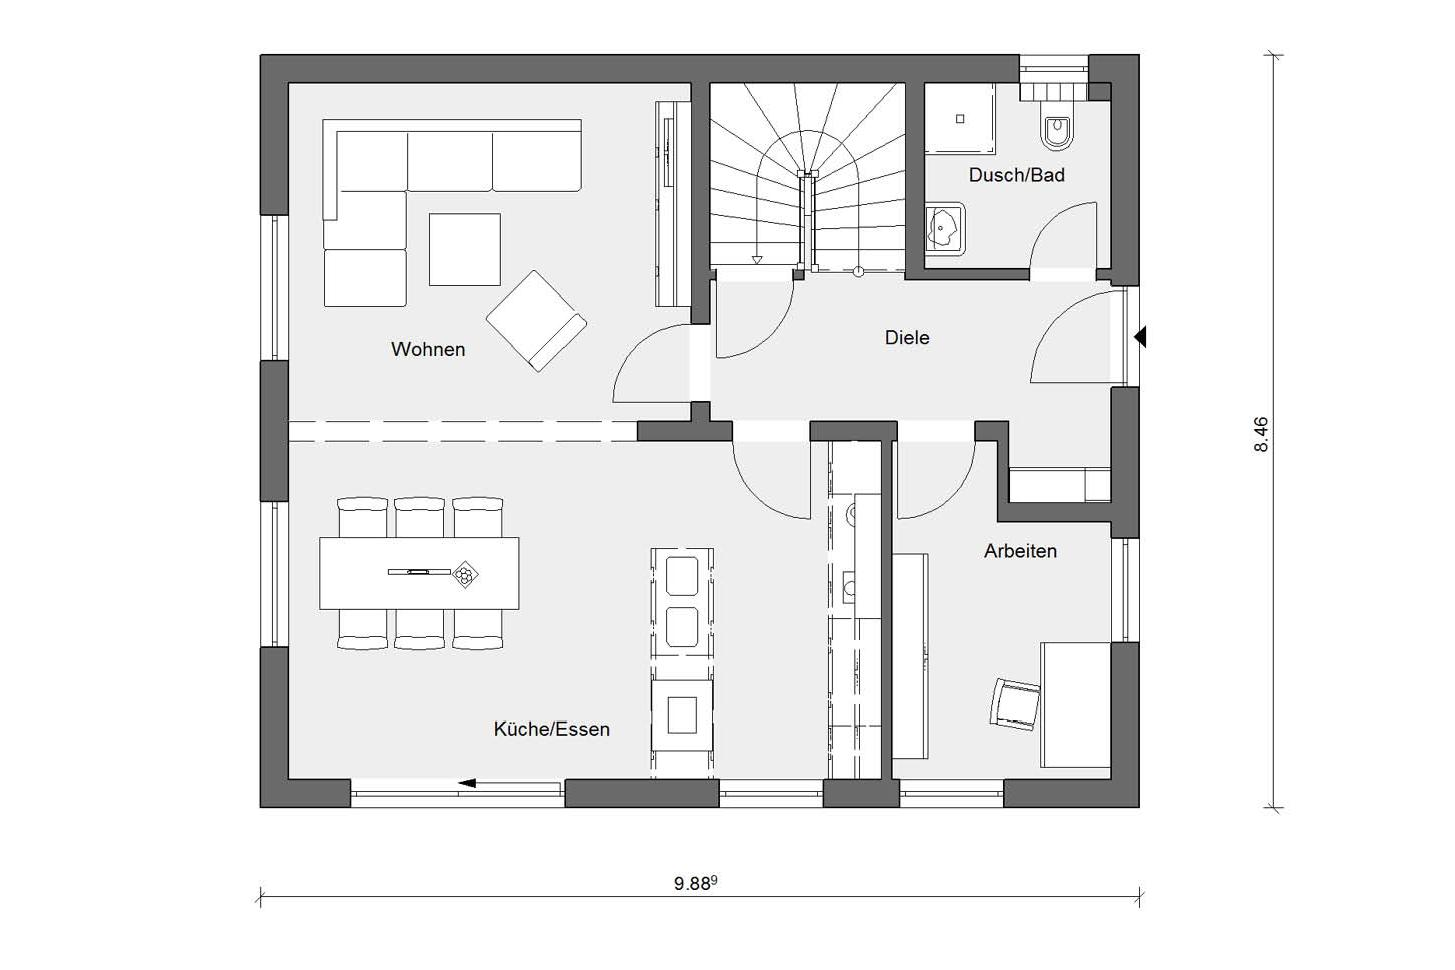 Floor plan ground floor E 15-137.4 Detached house with pitched roof